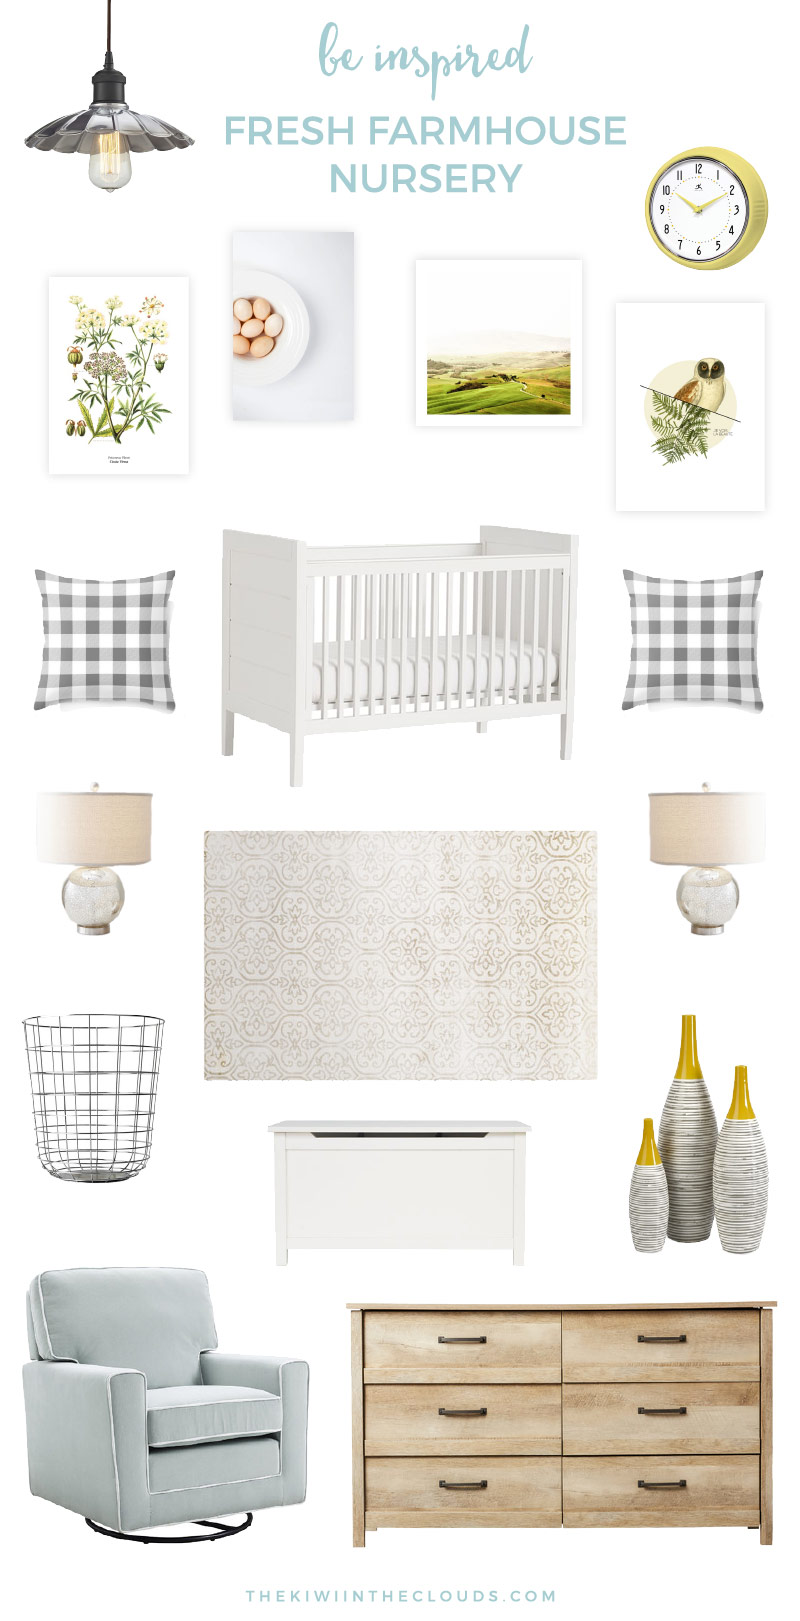 How To Design A Fixer Upper Nursery That Joanna Would Love